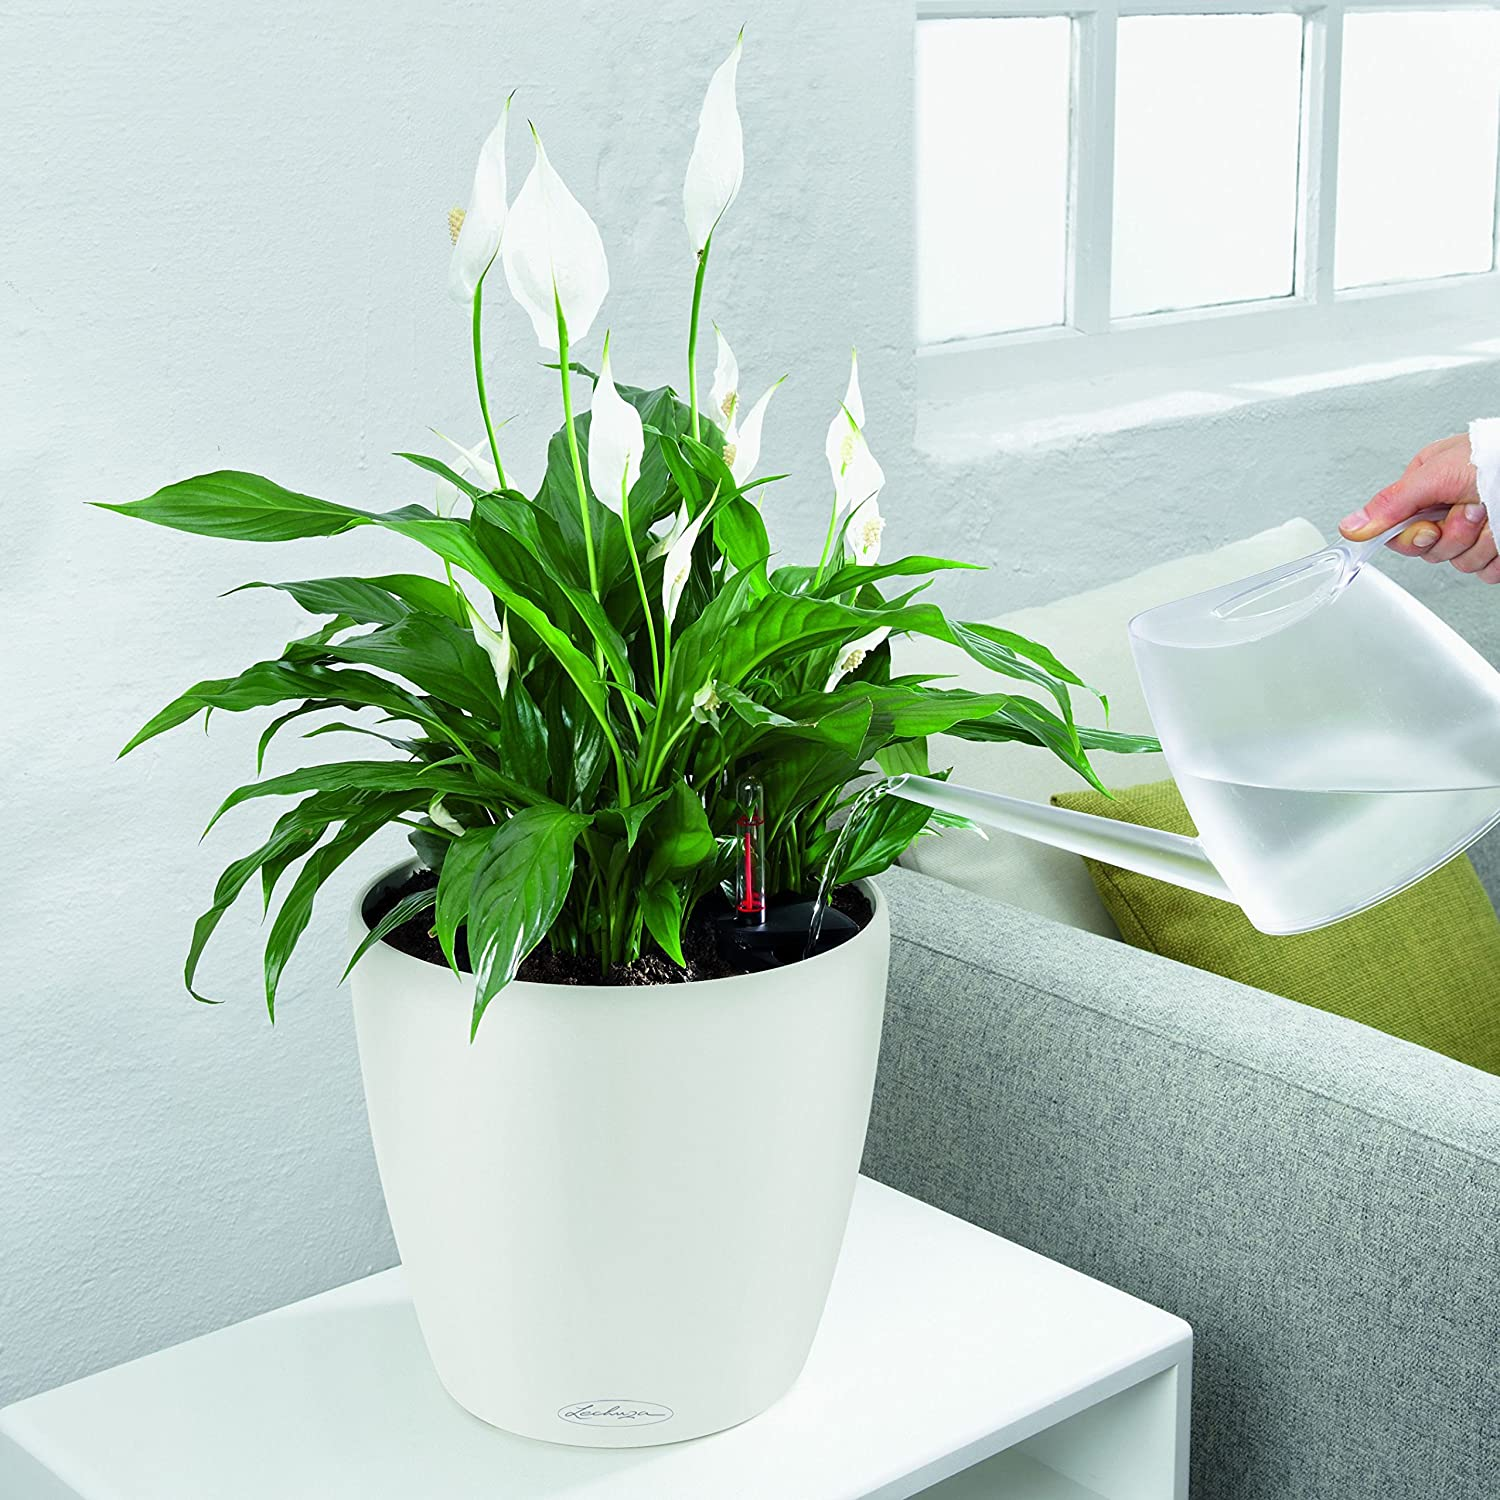 Lechuza Classico Color 21 Self-Watering Garden Planter for Indoor and Outdoor Use, White Matte